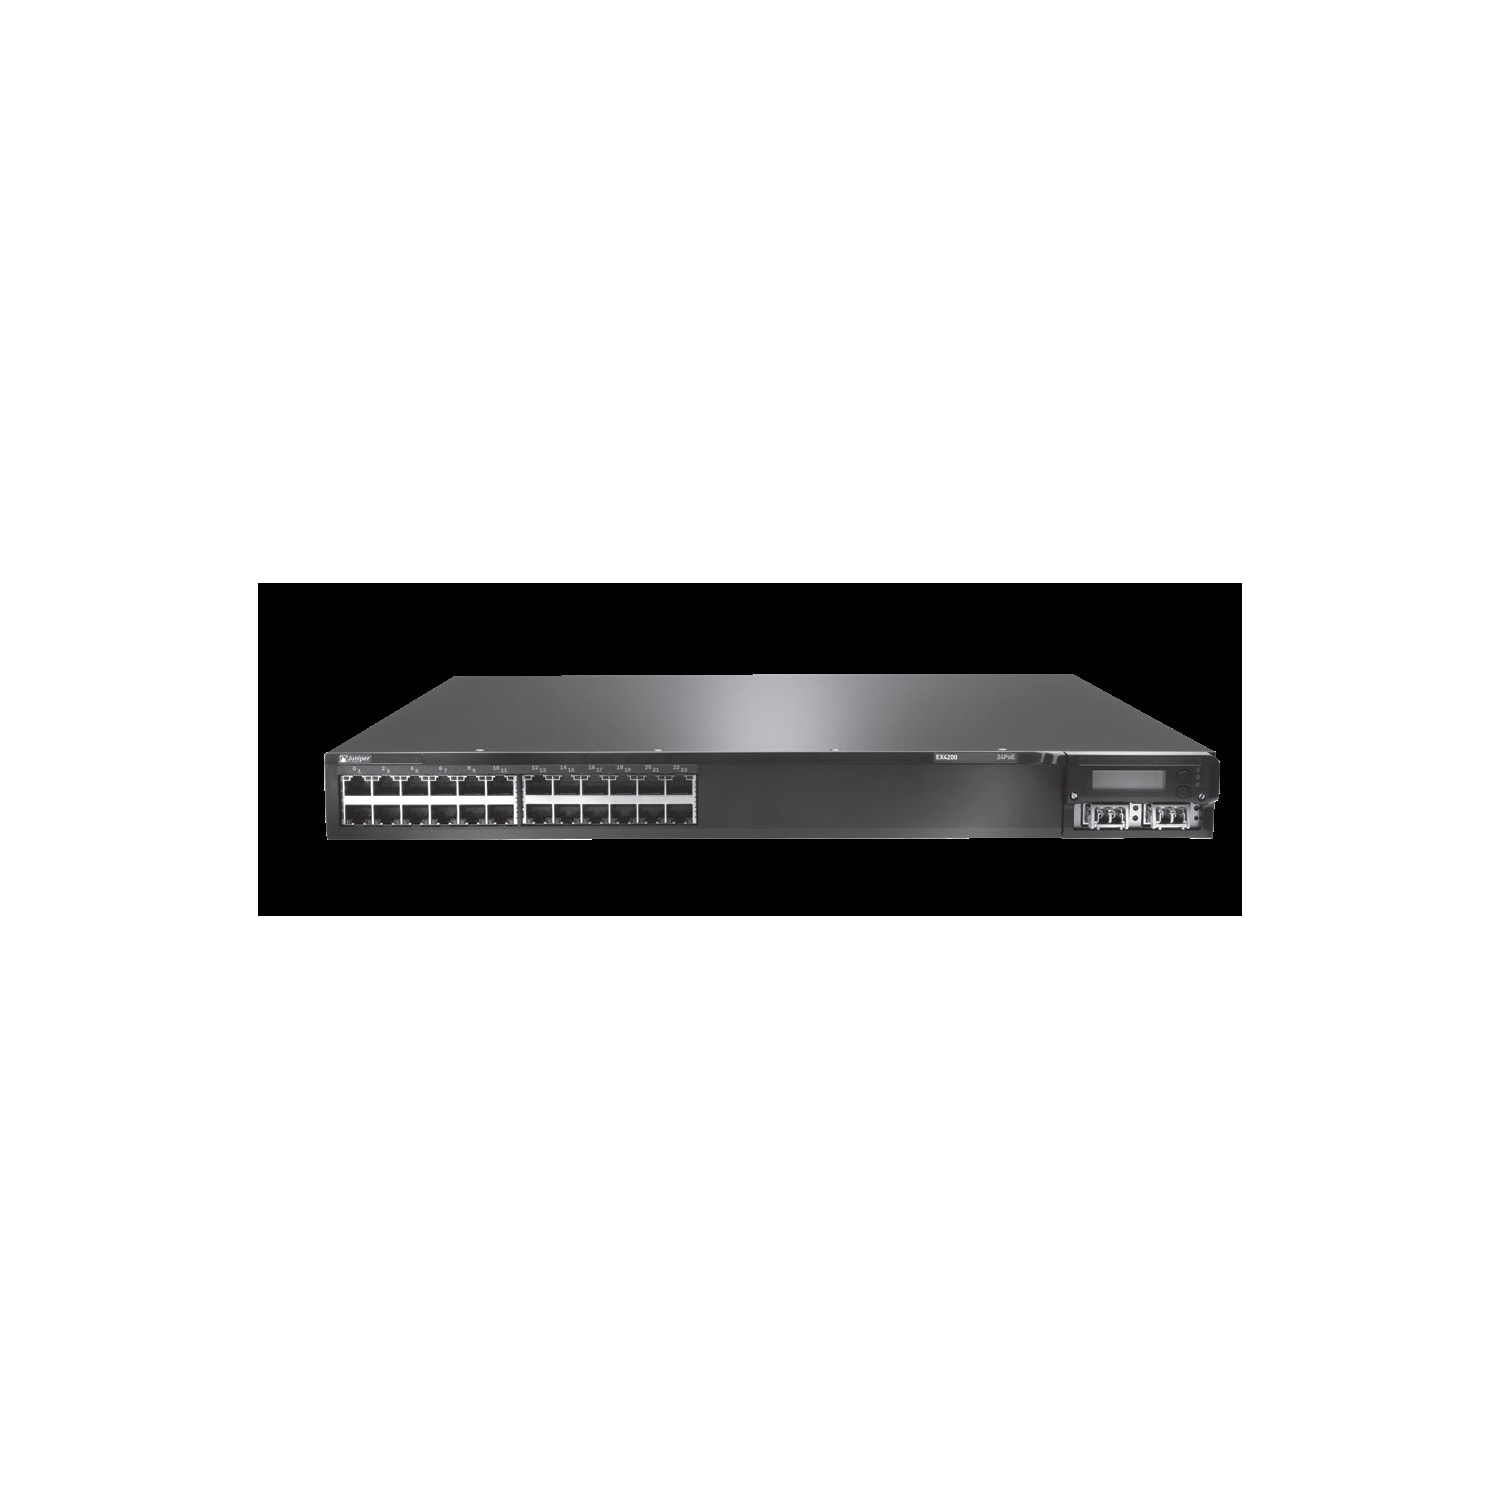 Buy Juniper EX4200-24PX 24 Ports Manageable Layer 3 Switch   Genisys